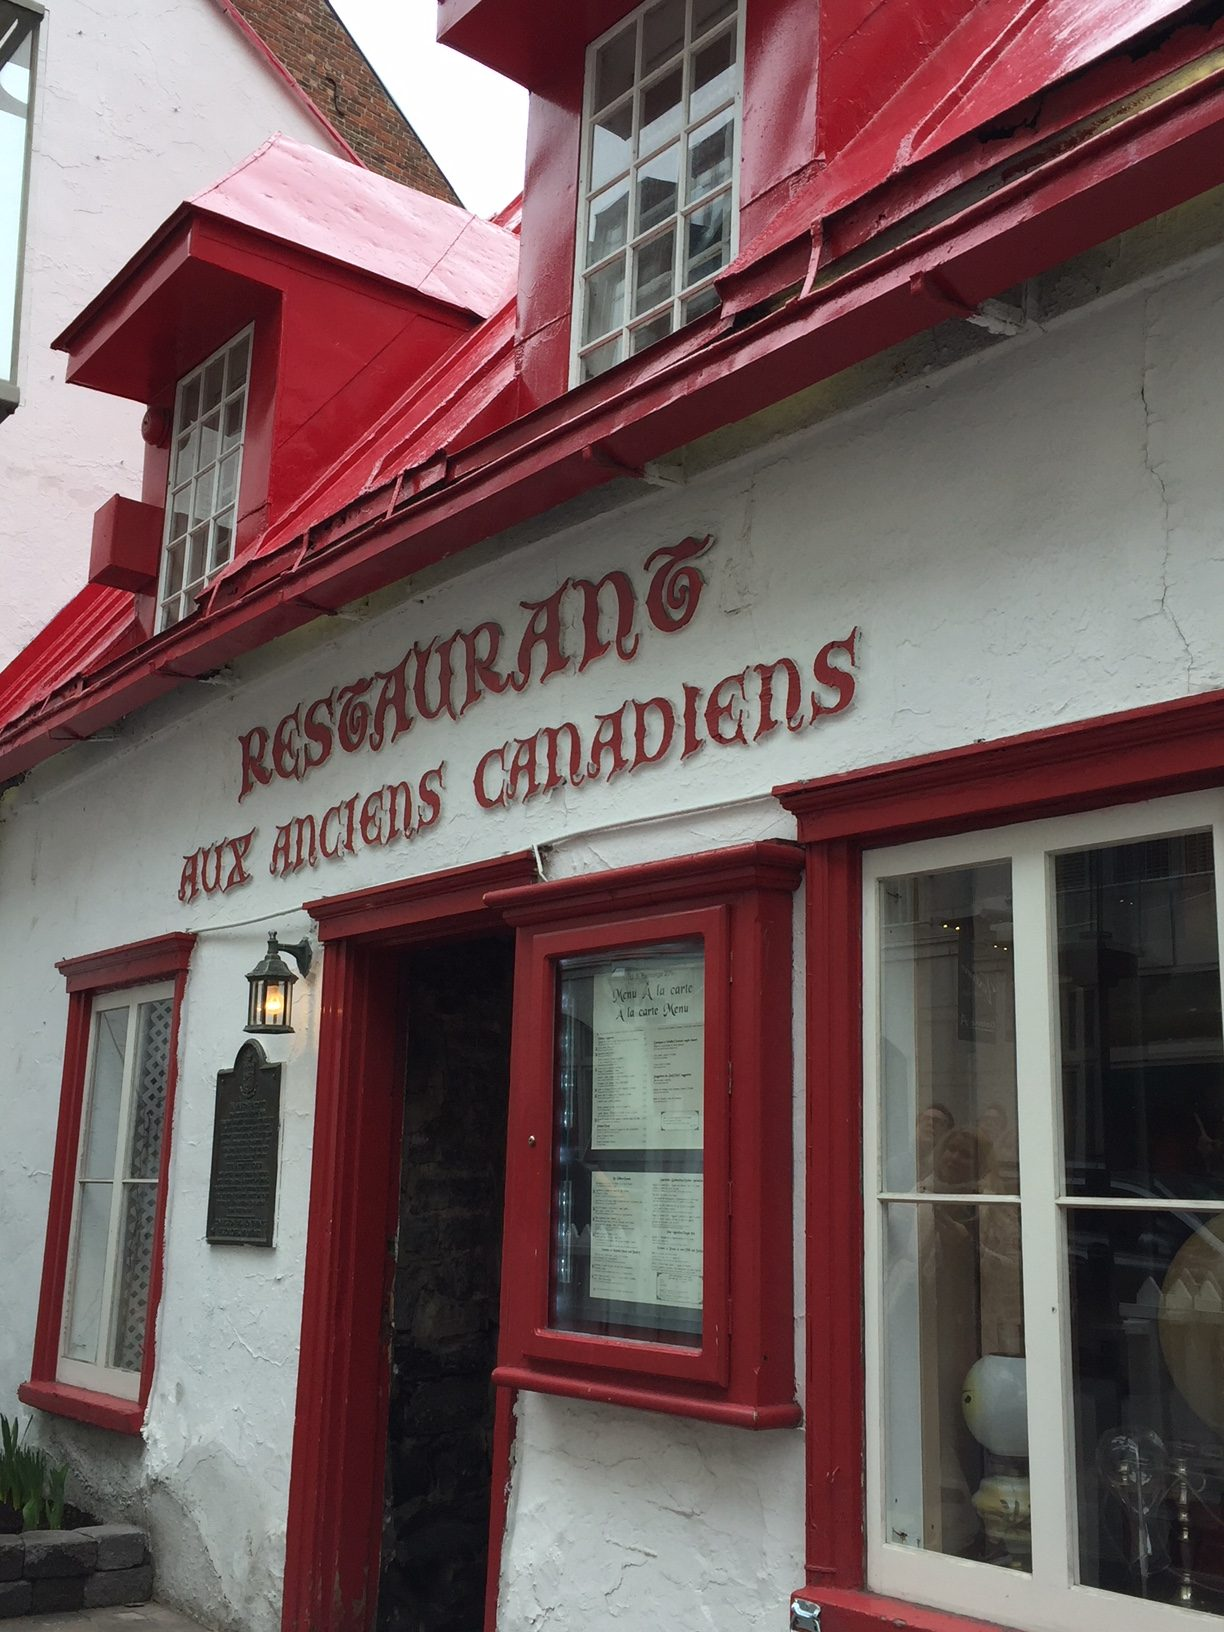 Old Quebec City Restaurants Archives A Boomers Life After 50